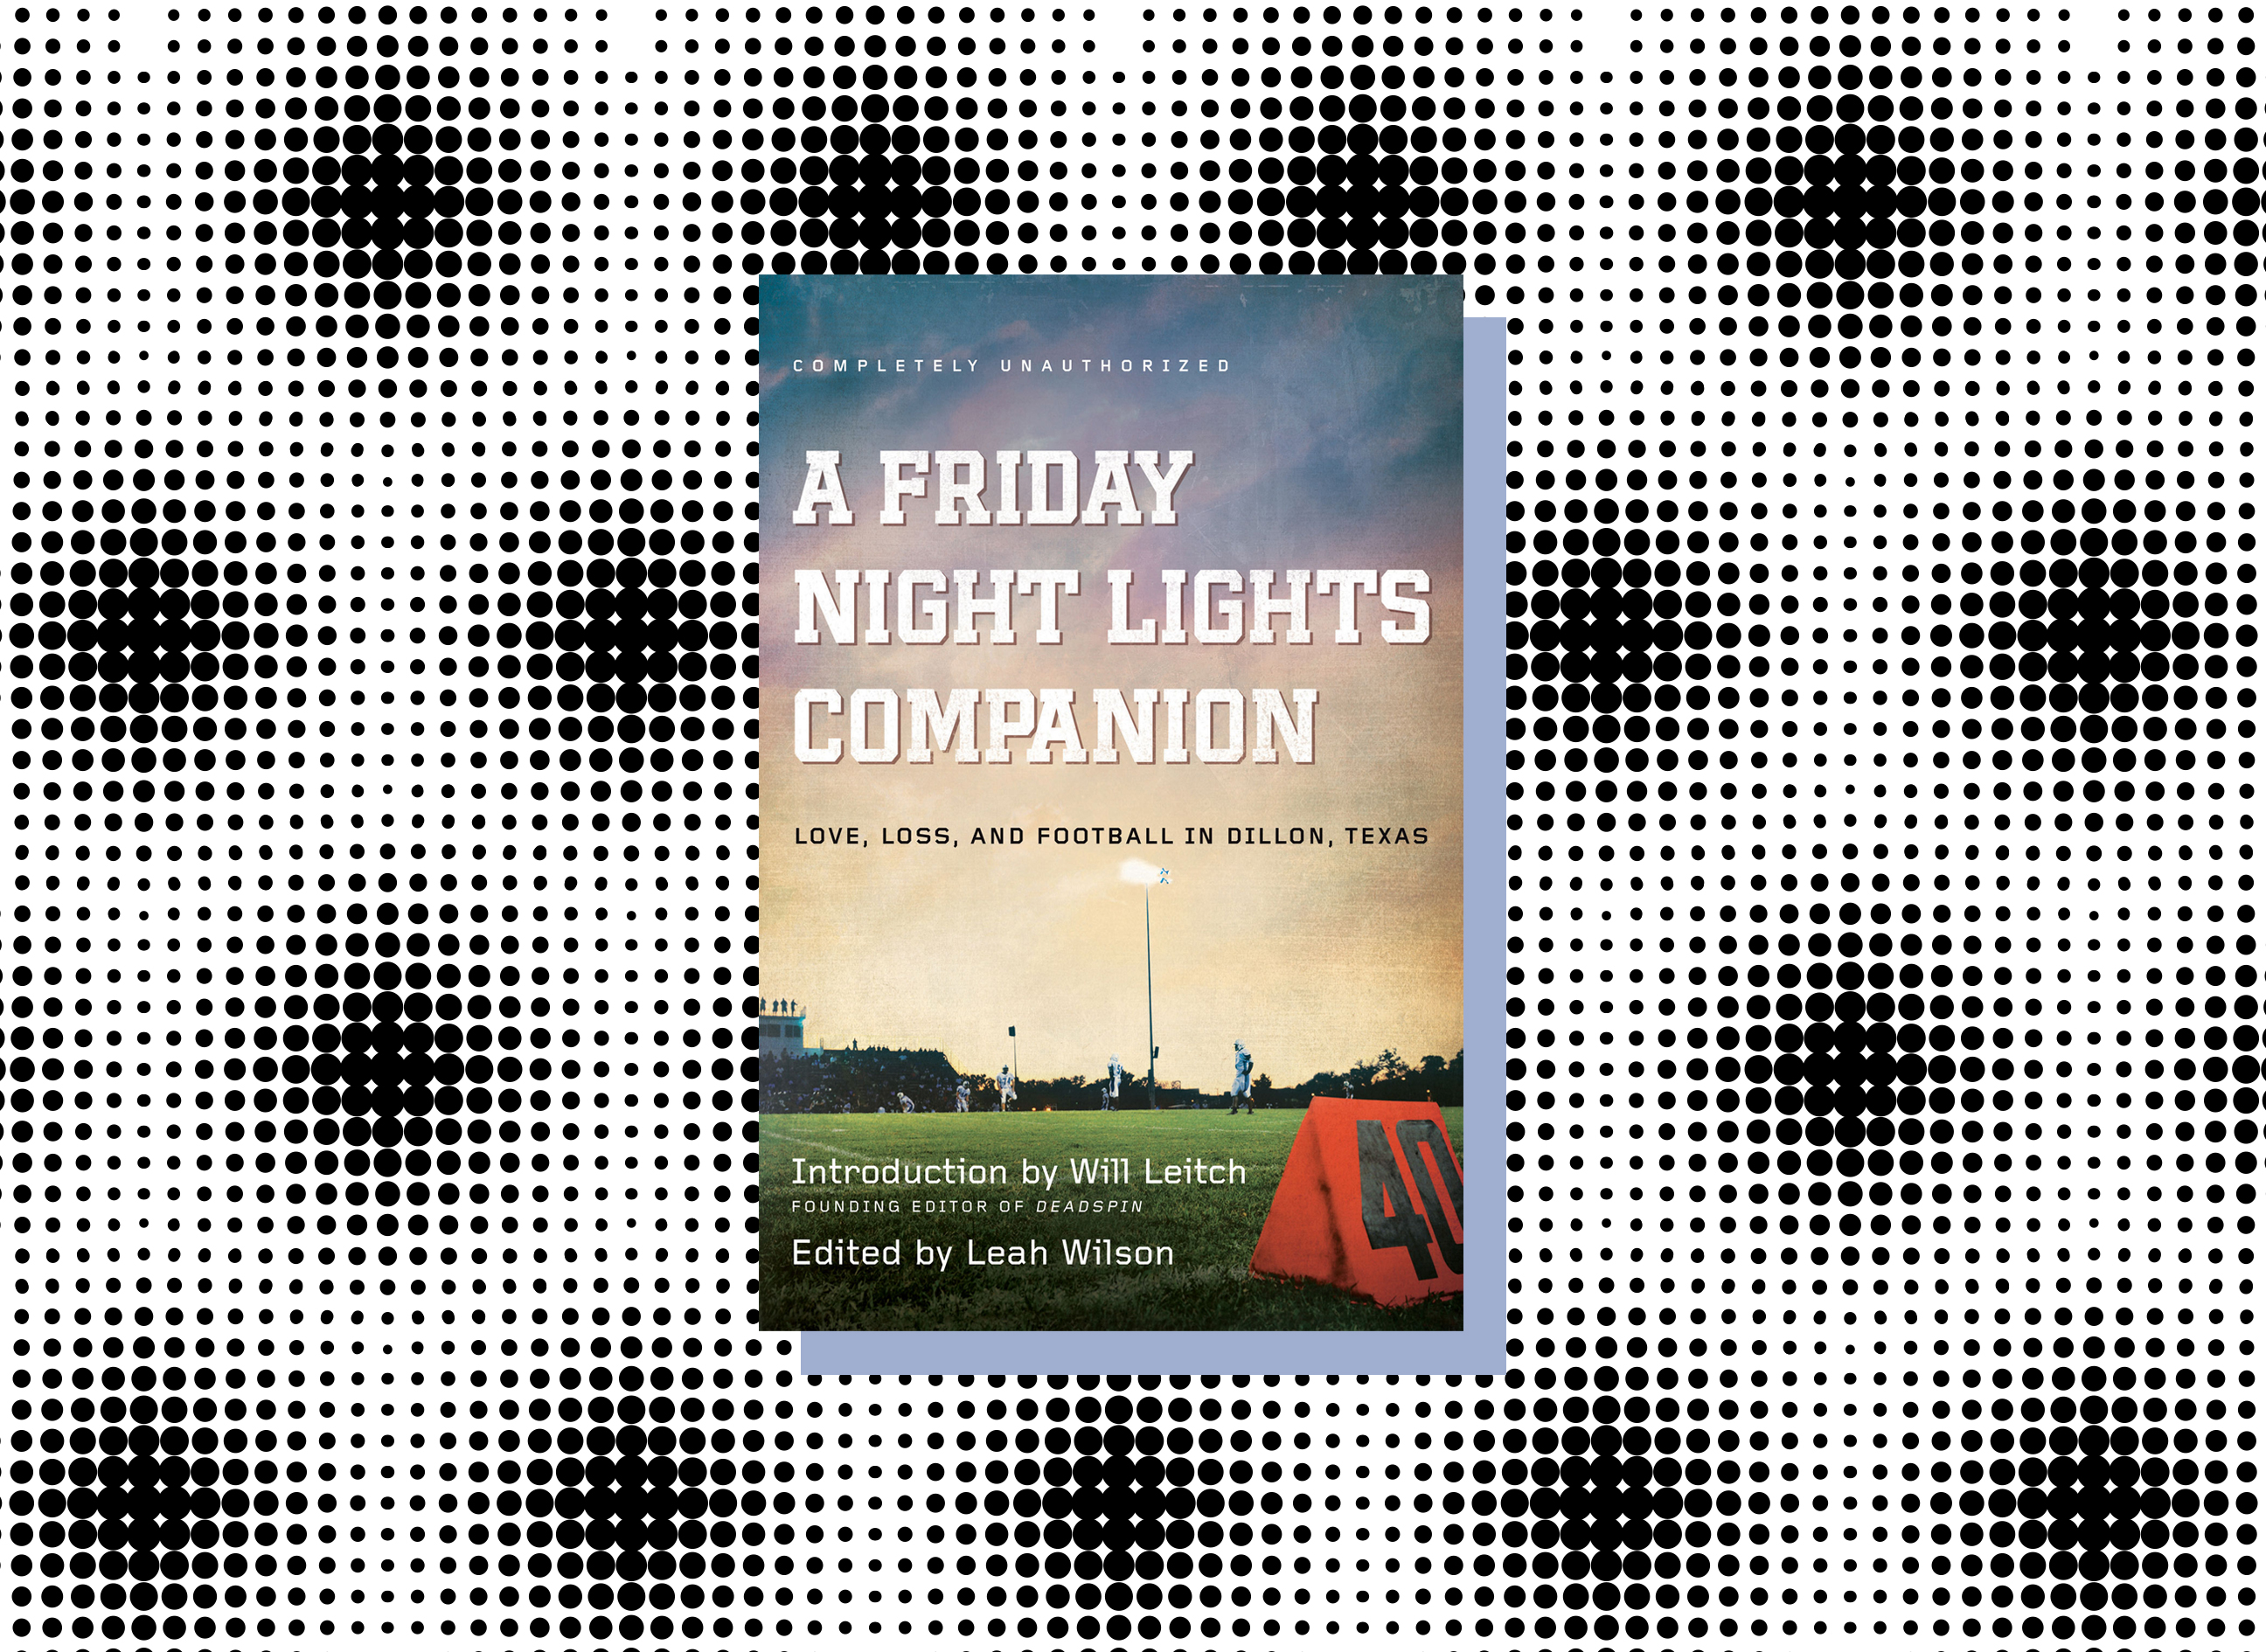 A Friday Night Lights Companion cover